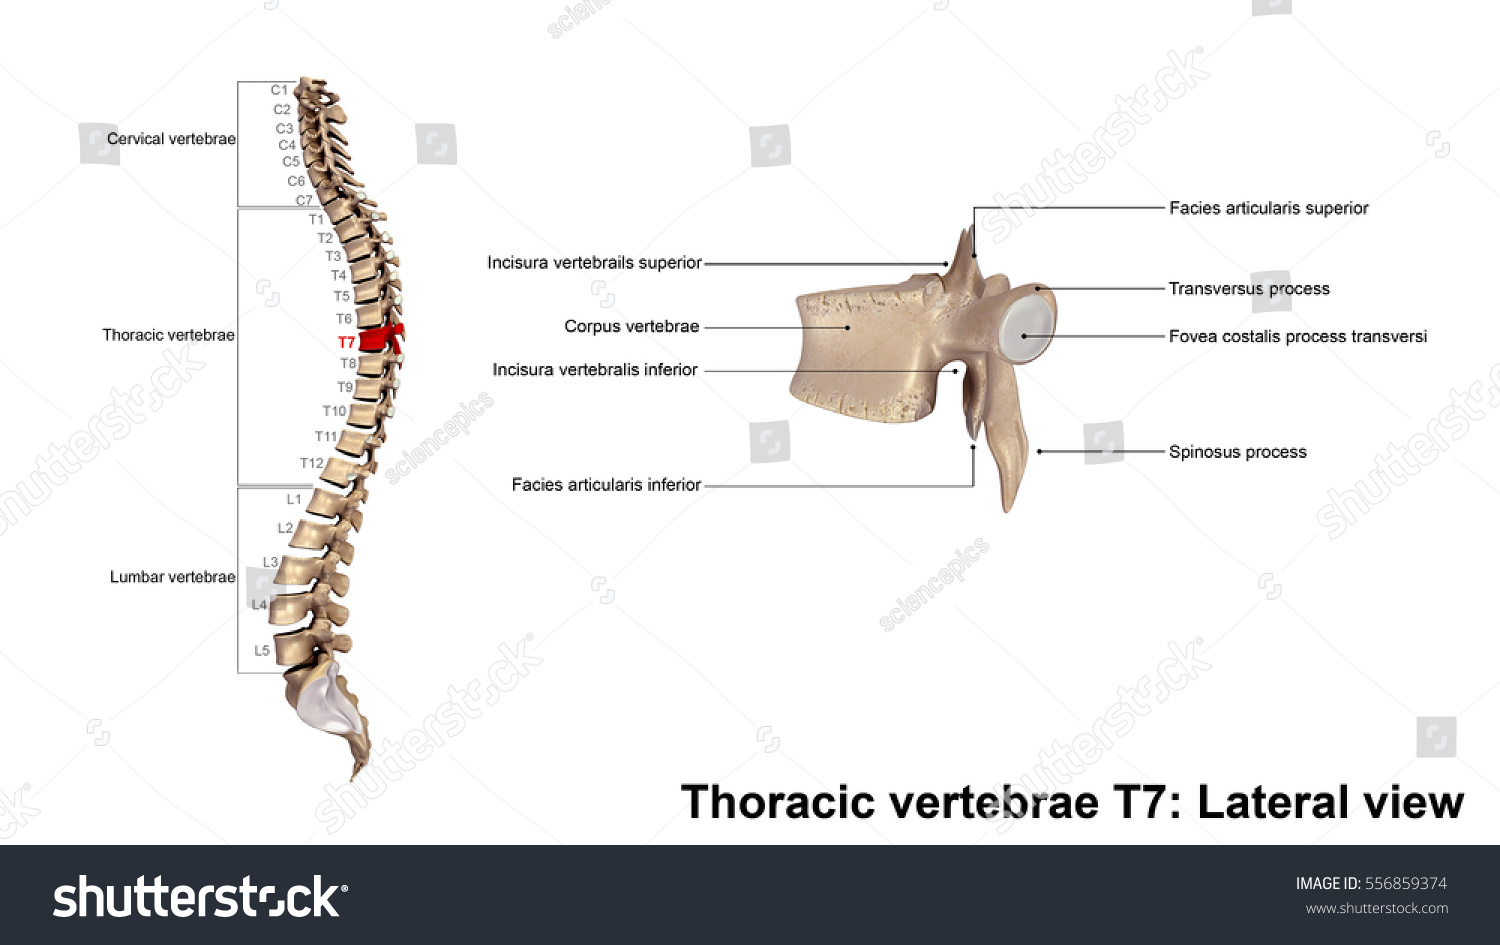 Thoracic Vertebrae T 7 Lateral View 3 D Stock Illustration 556859374